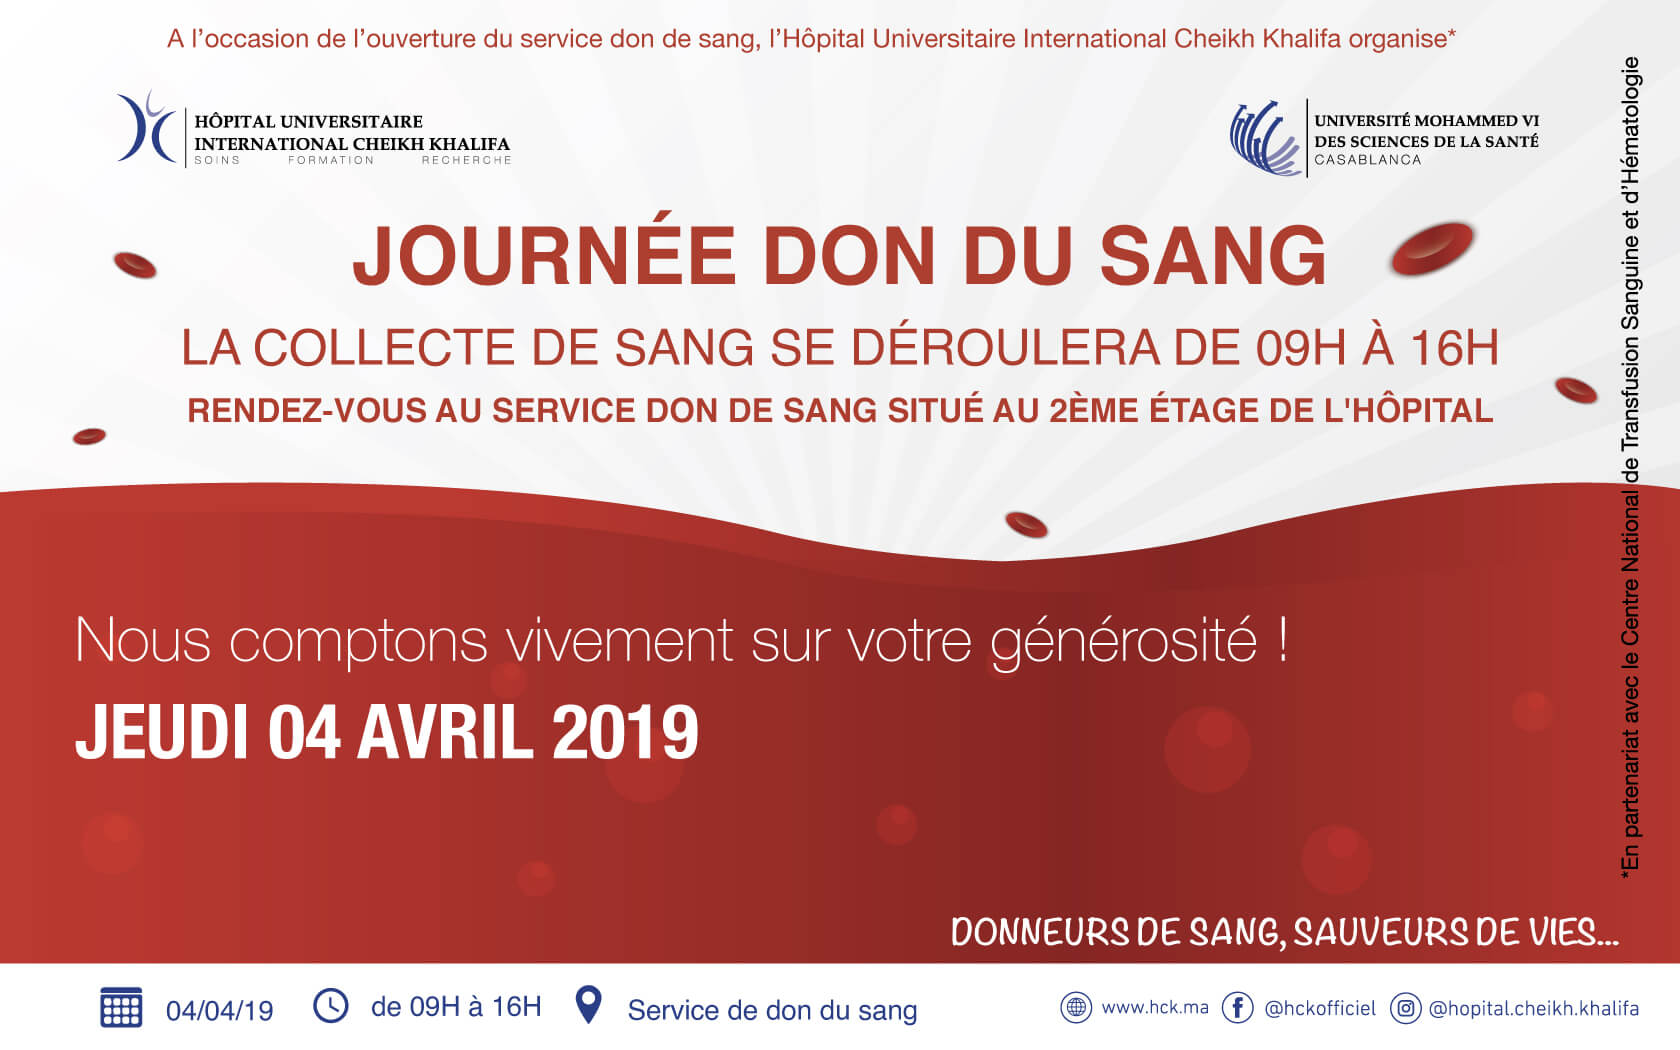 Ouverture du service don de sang l'Hôpital Universitaire International Cheikh Khalifa